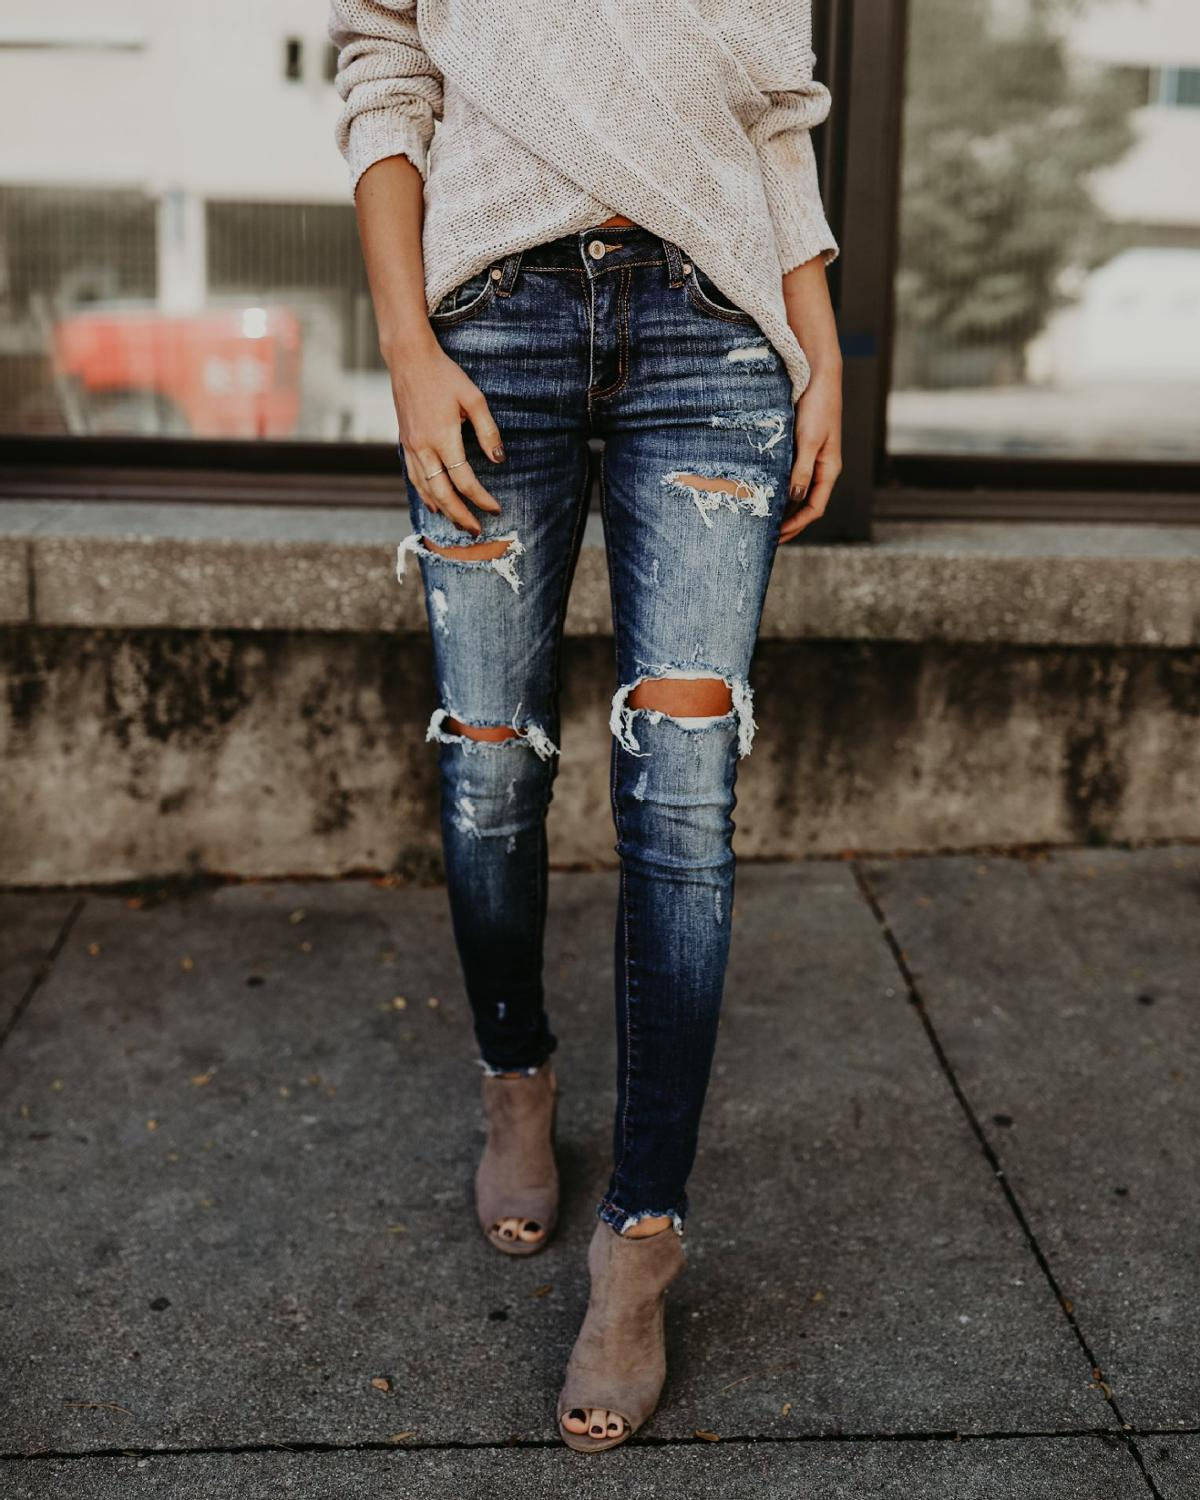 2020 Summer High Waist Jeans Womans Casual Ripped Hole Cropped Slim Skinny Long Skinny Jeans Women Pencil Vintage Denim Pants